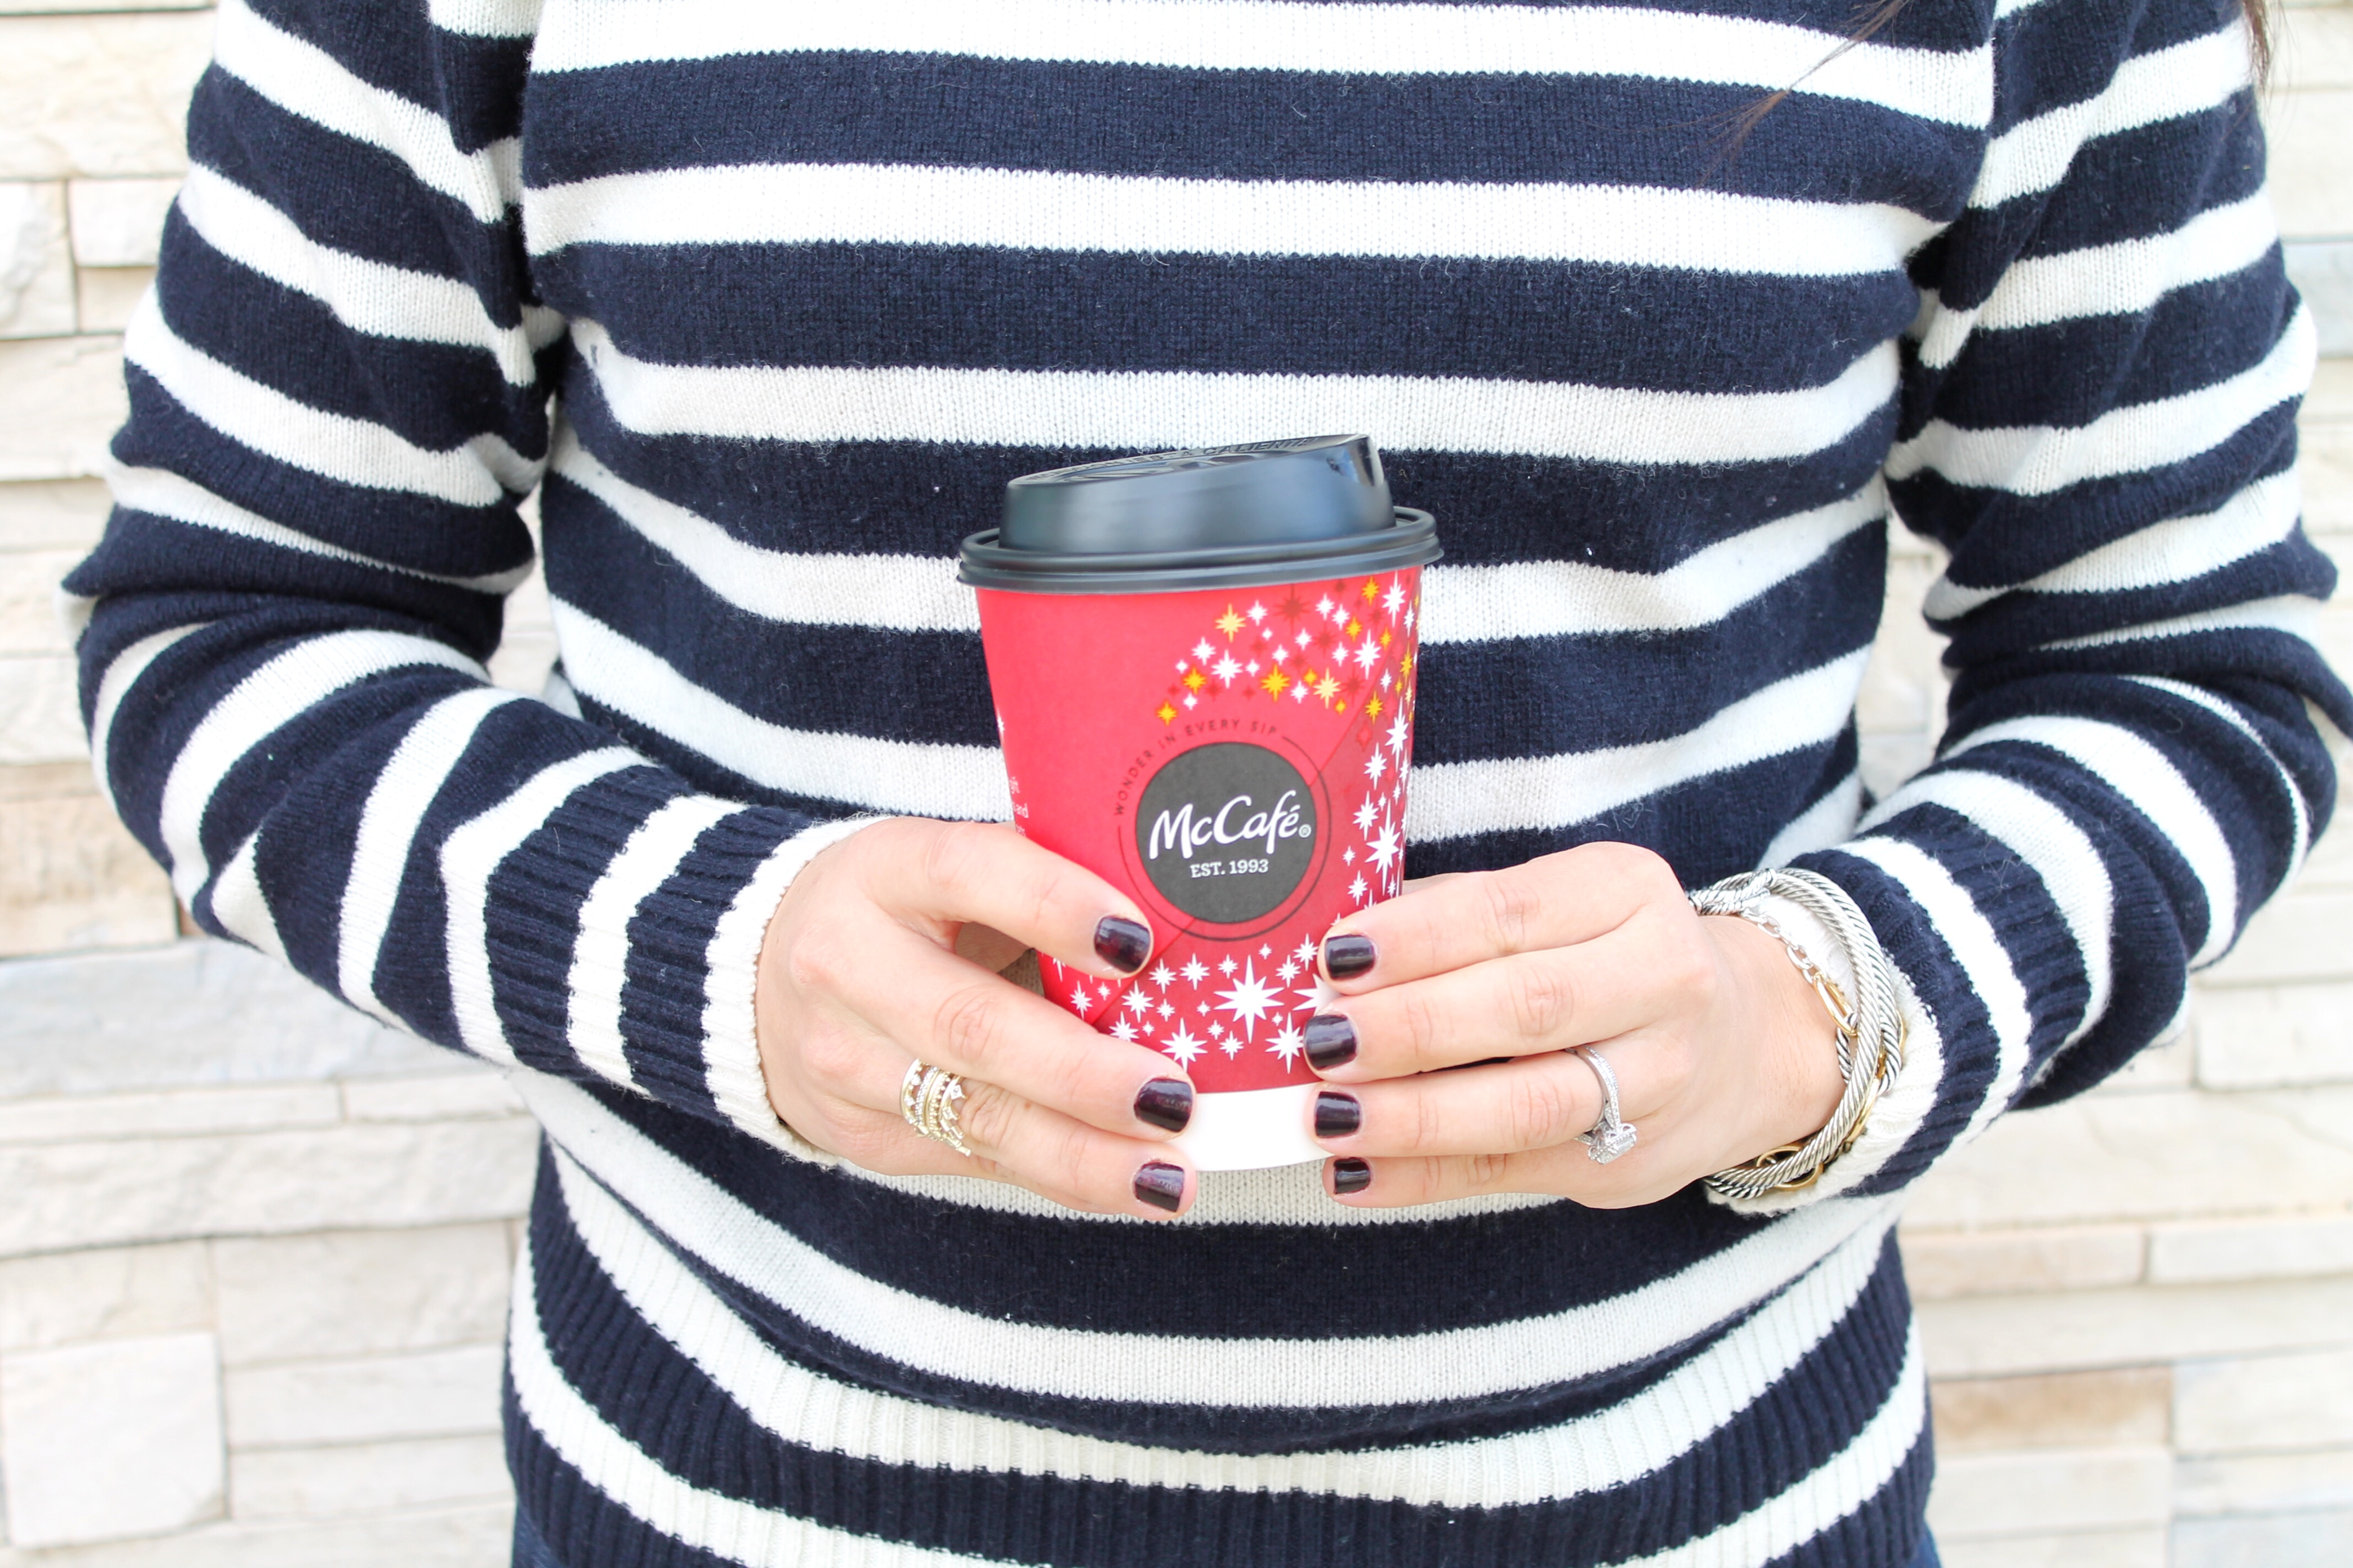 7 tips to create a stellar weekly routine! Number 1 is my favorite: coffee. Check out all the details in this must-read. #ad #mccafe #mcdonalds #coffee